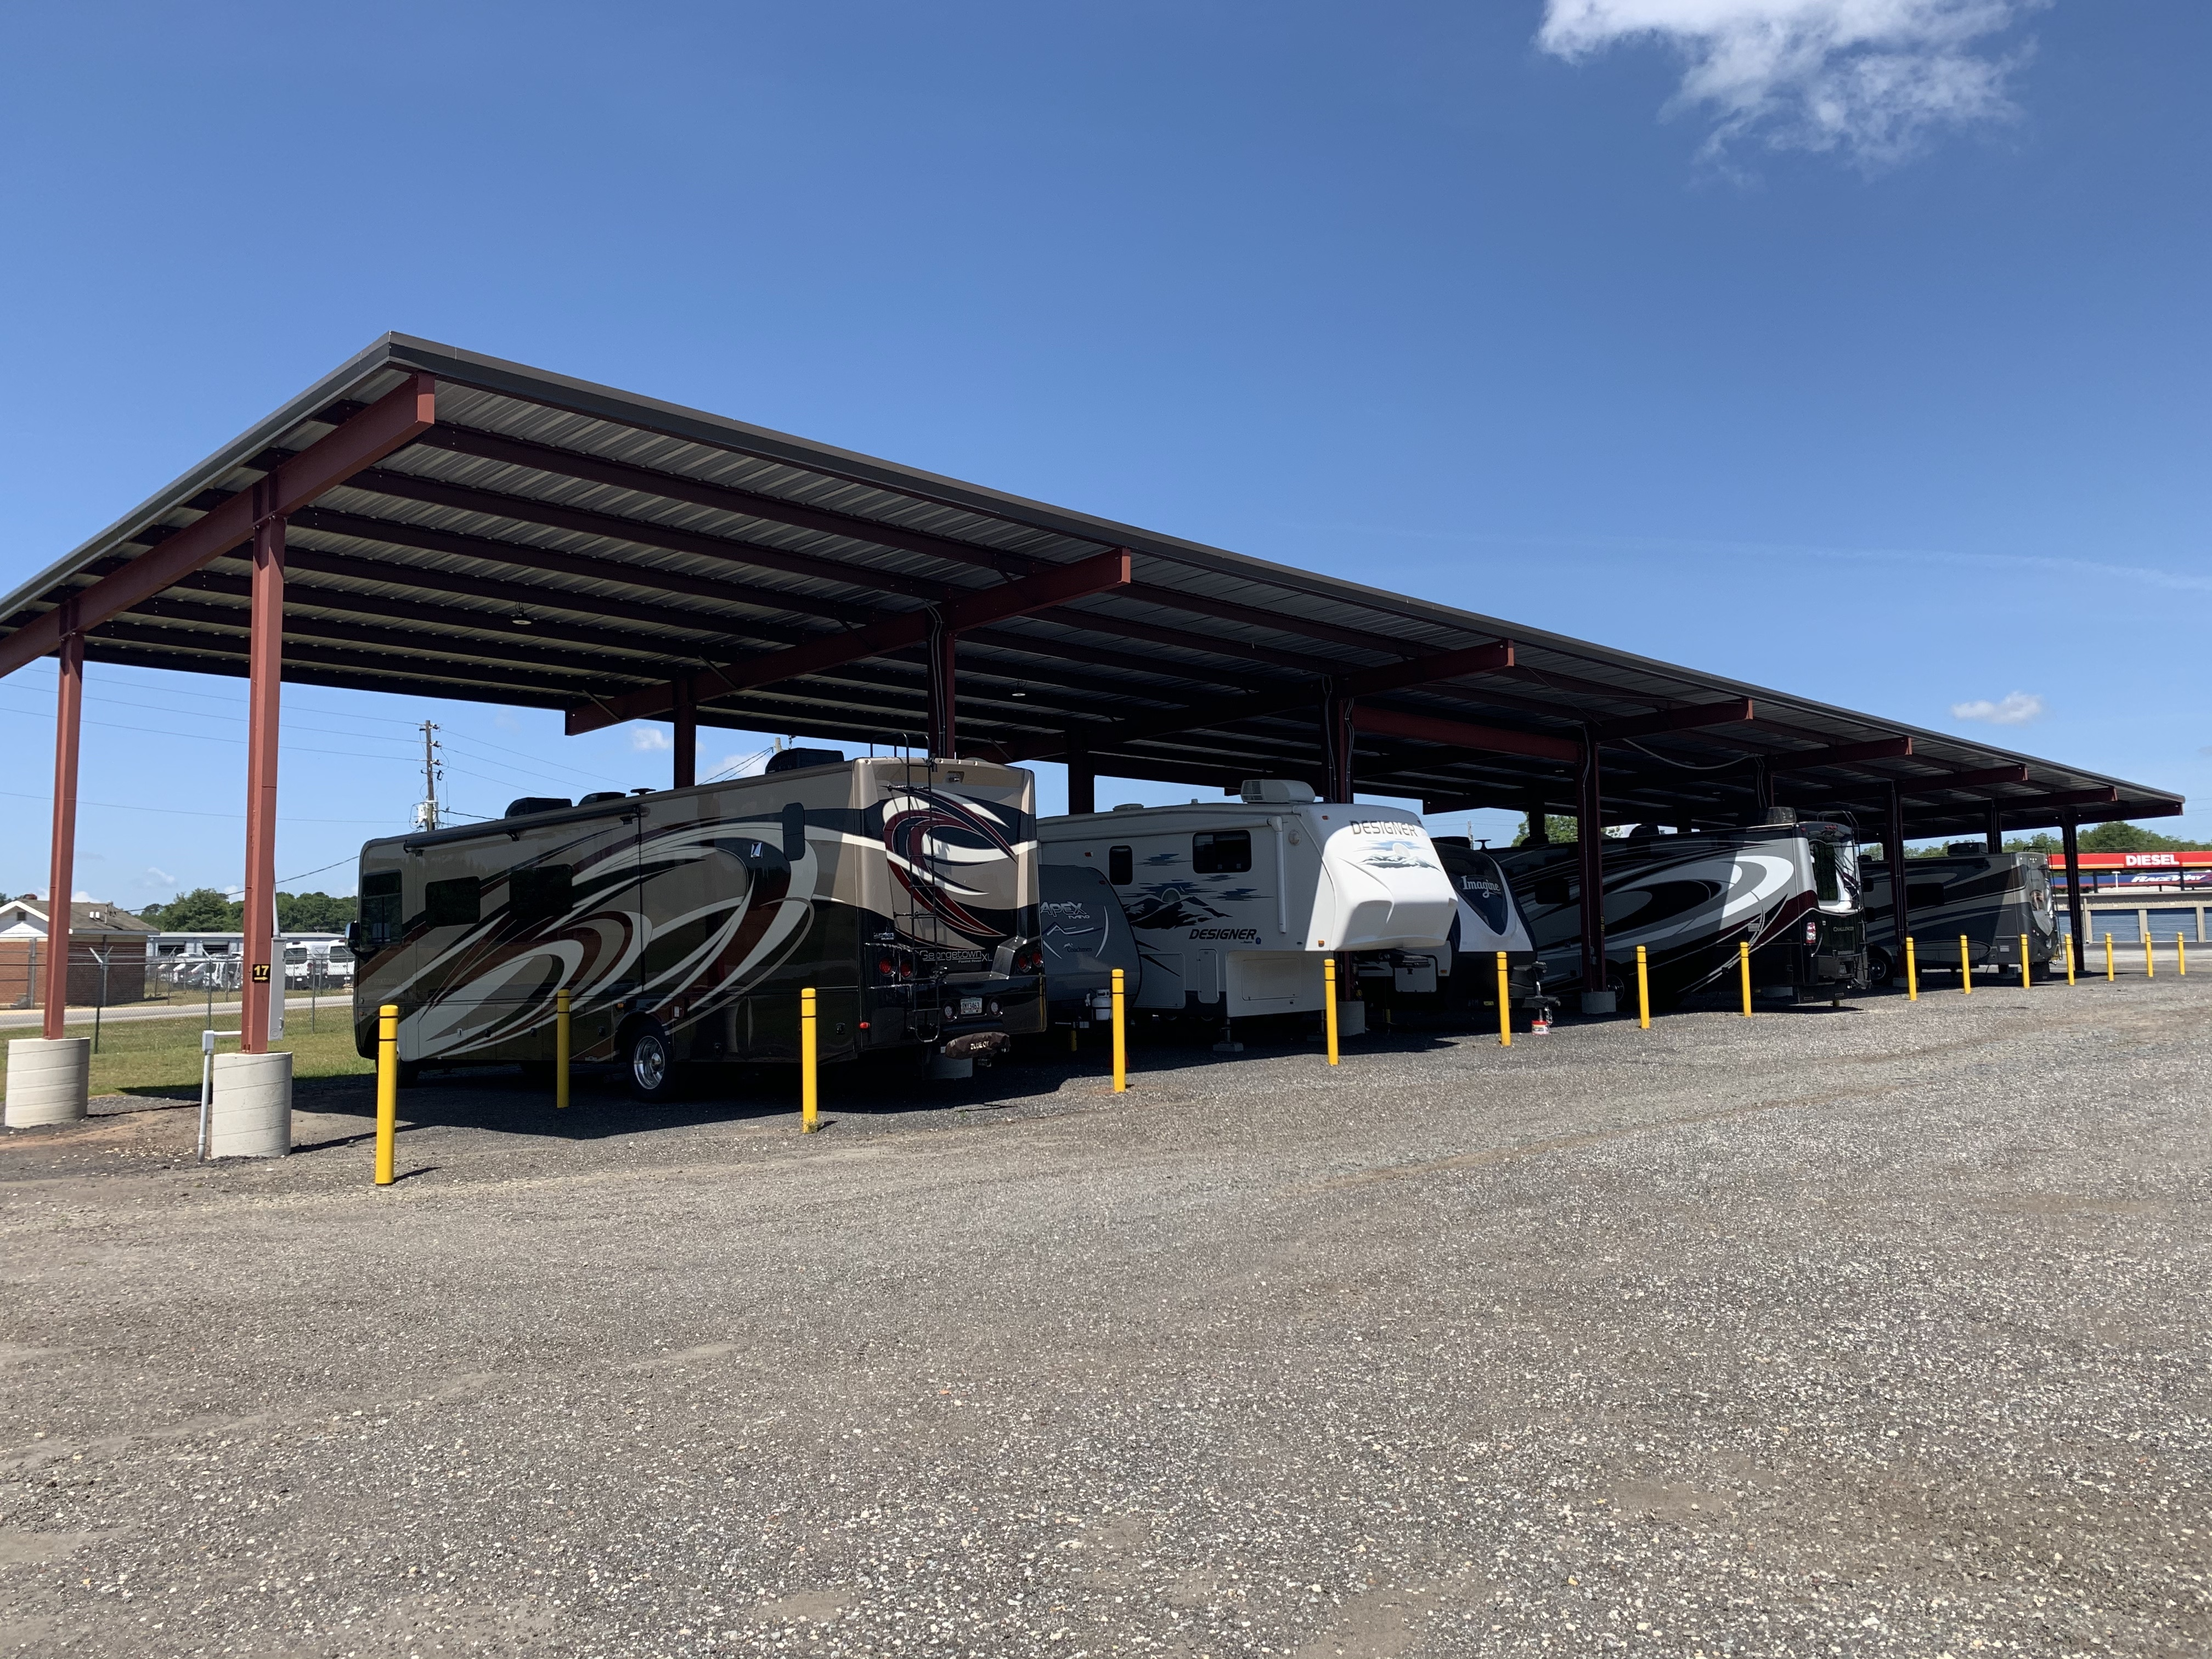 Covered parking spots with power hookup for RVs and campers